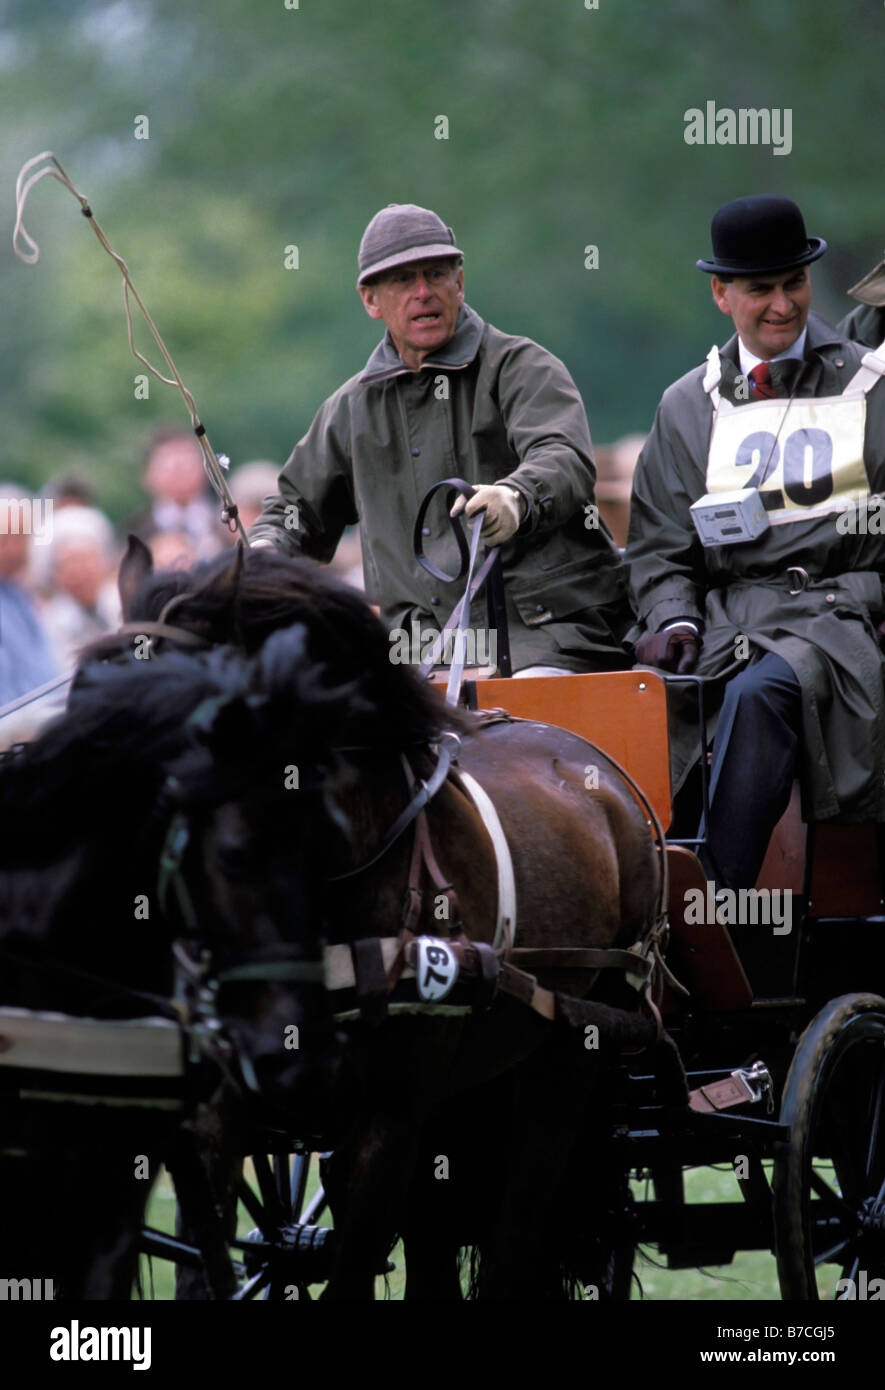 Prince Philip Duke Of Edinburgh Competing At Carriage Riding Windsor Horse Show Berkshire